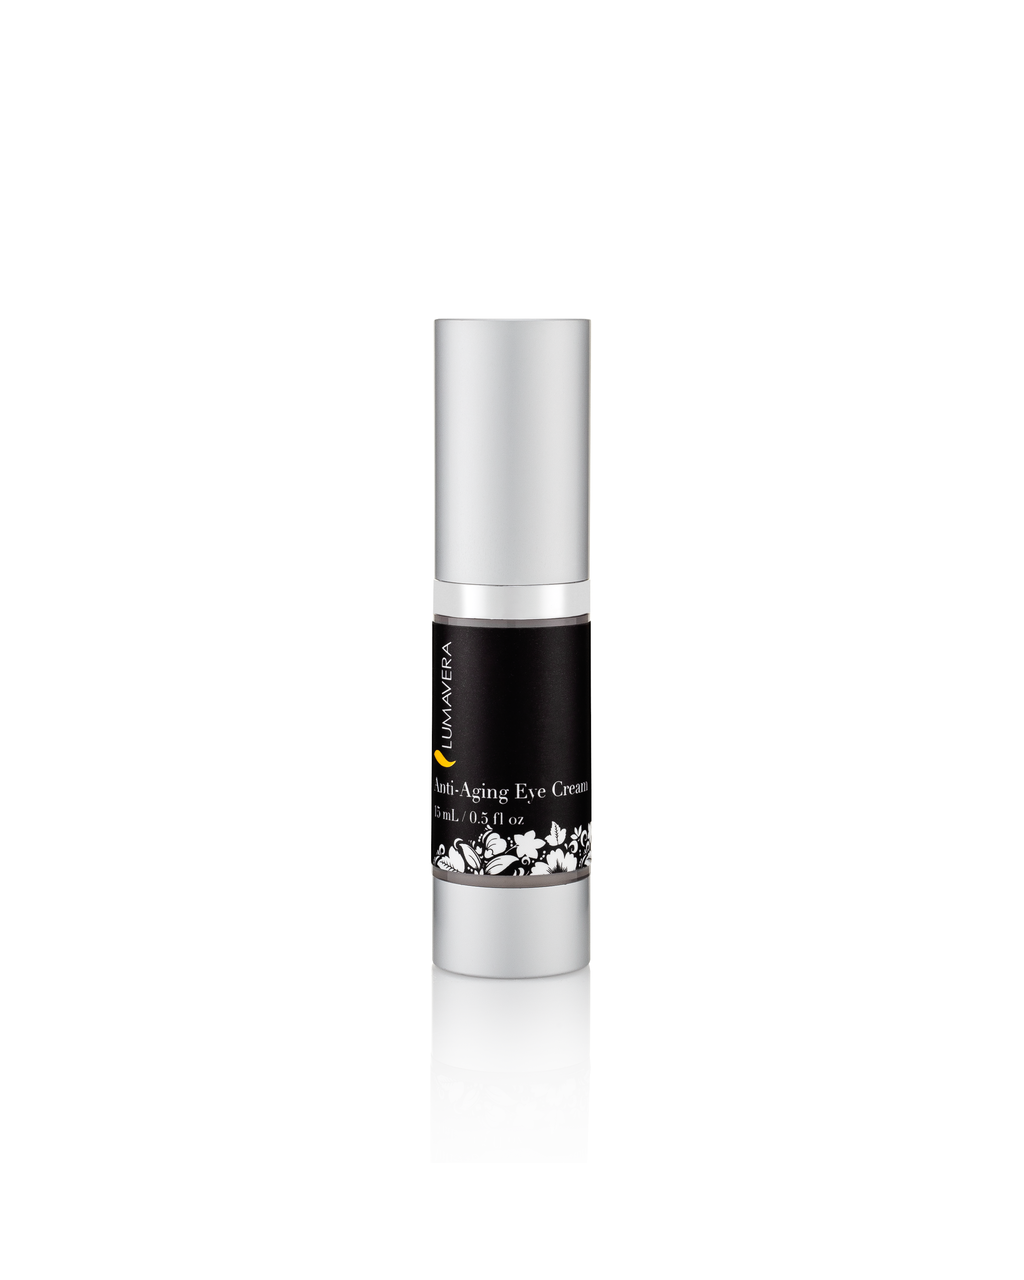 Anti-Aging Eye Cream with Hyaluronic-Peptide Lift